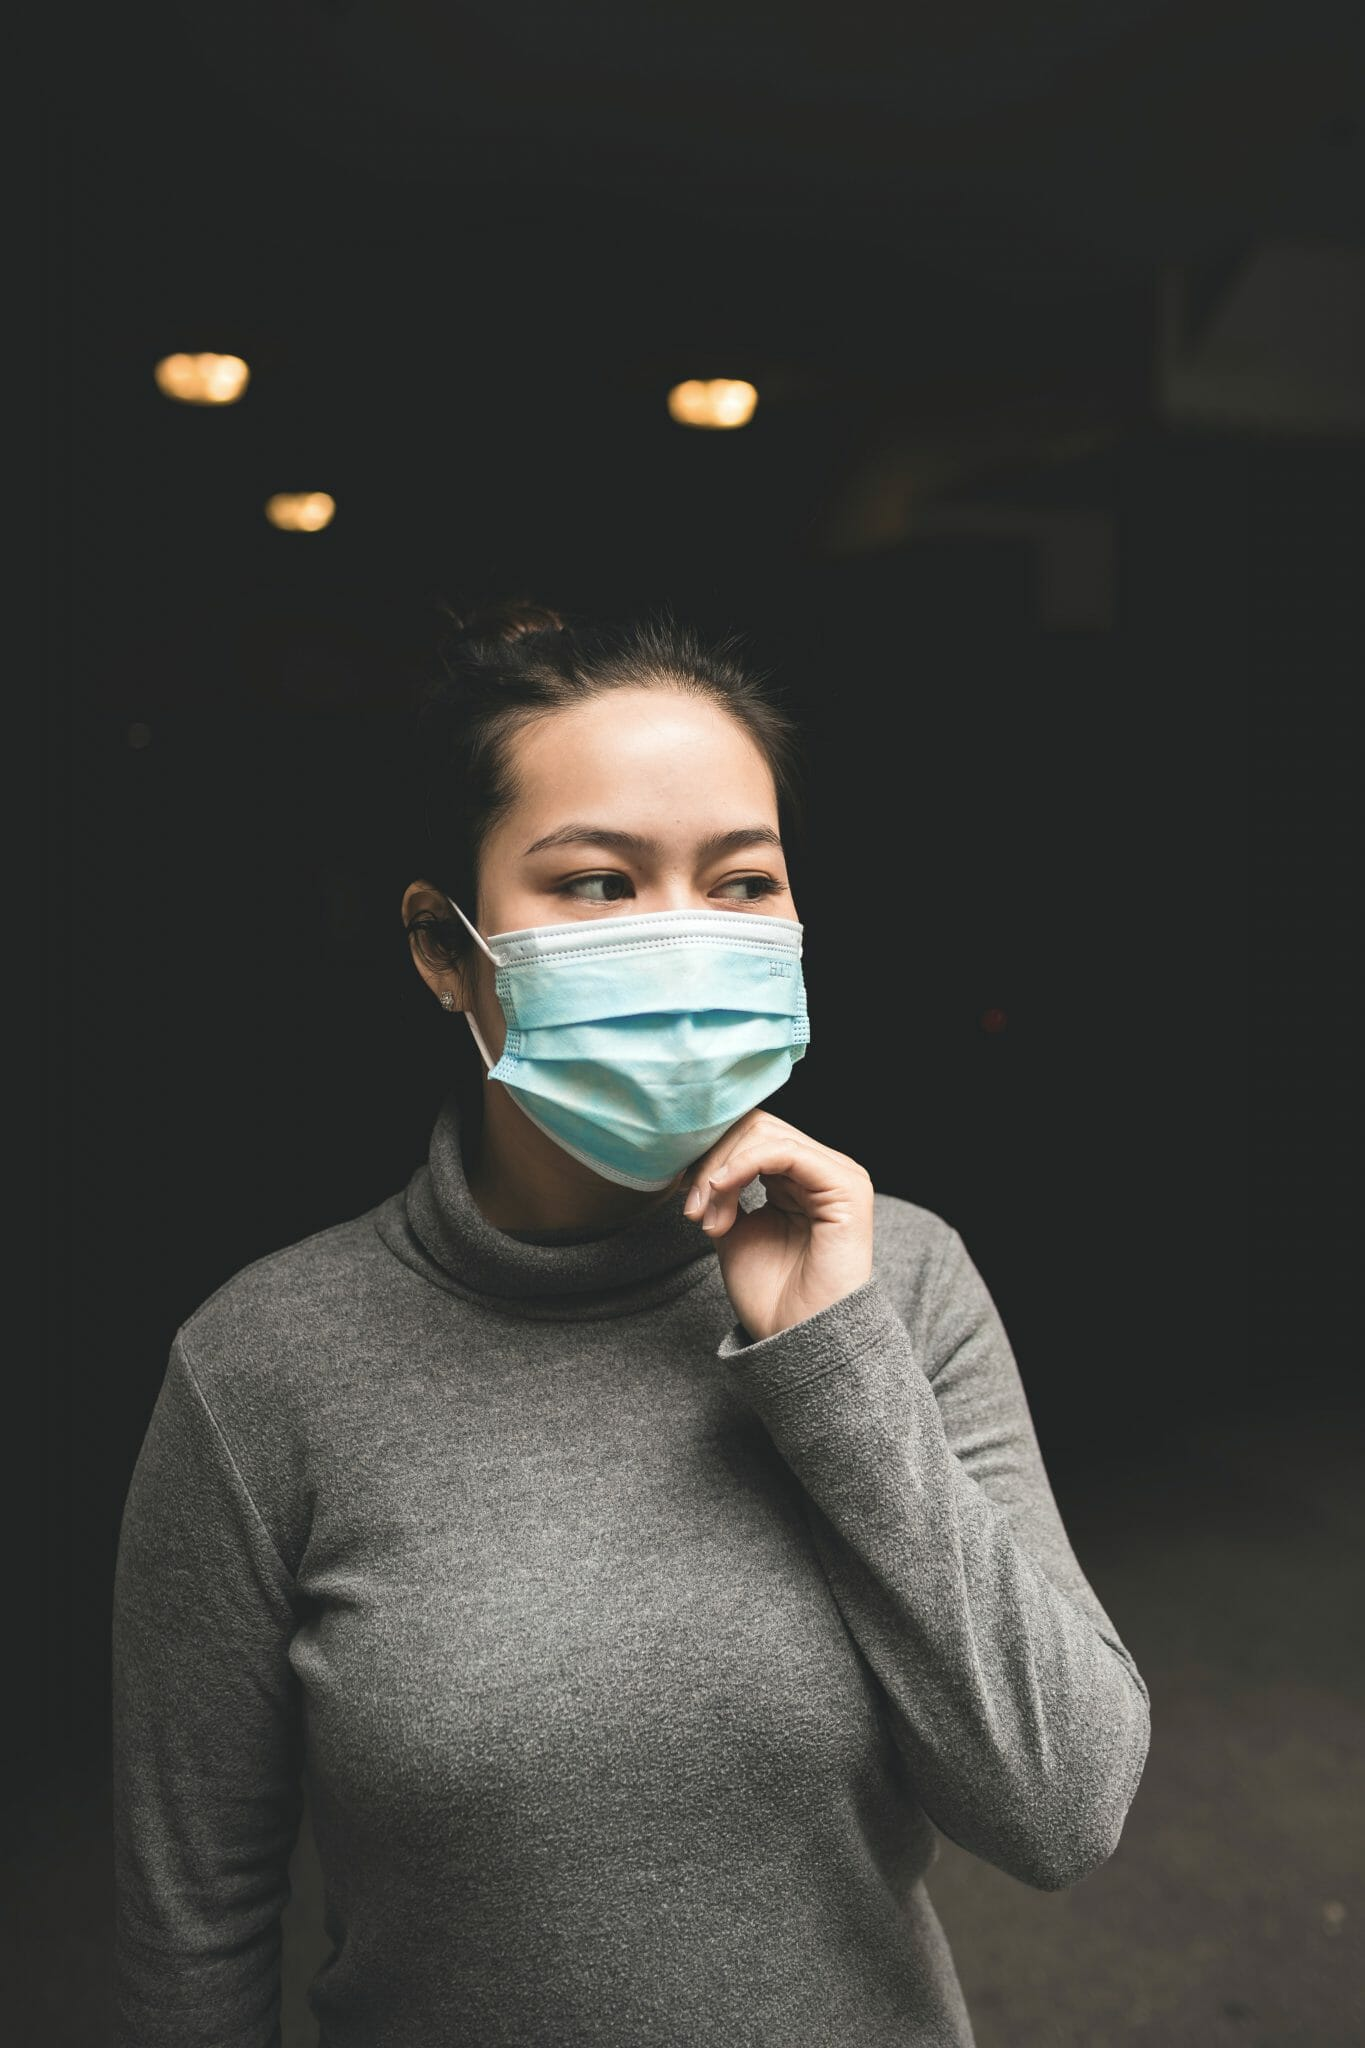 People And Masks Photo Contest